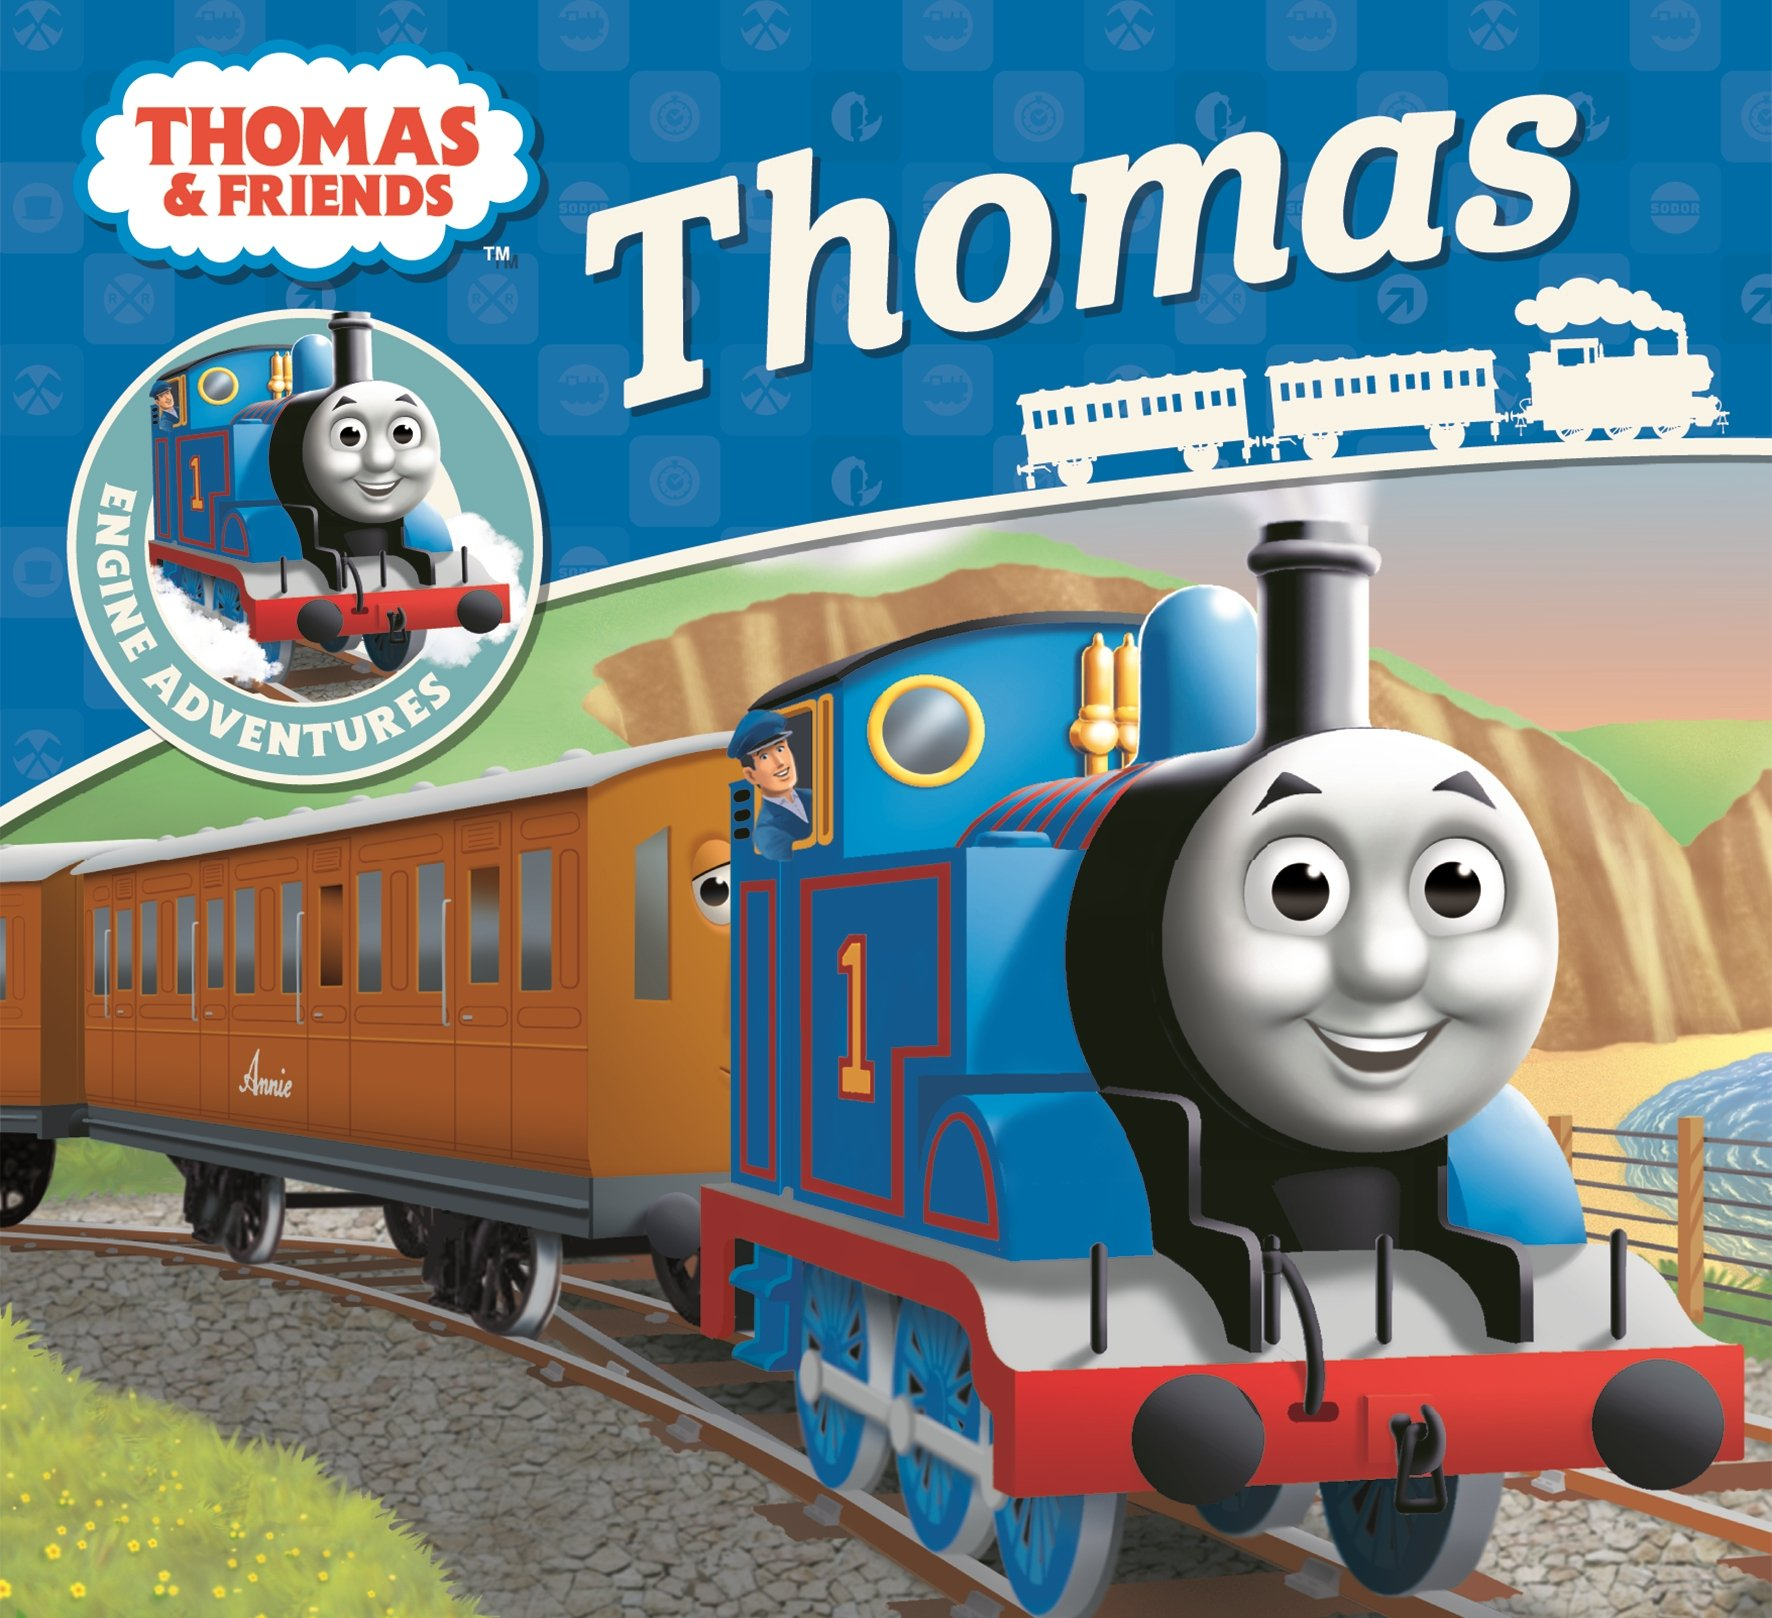 thomas friends thomas engine adventures howard hughes